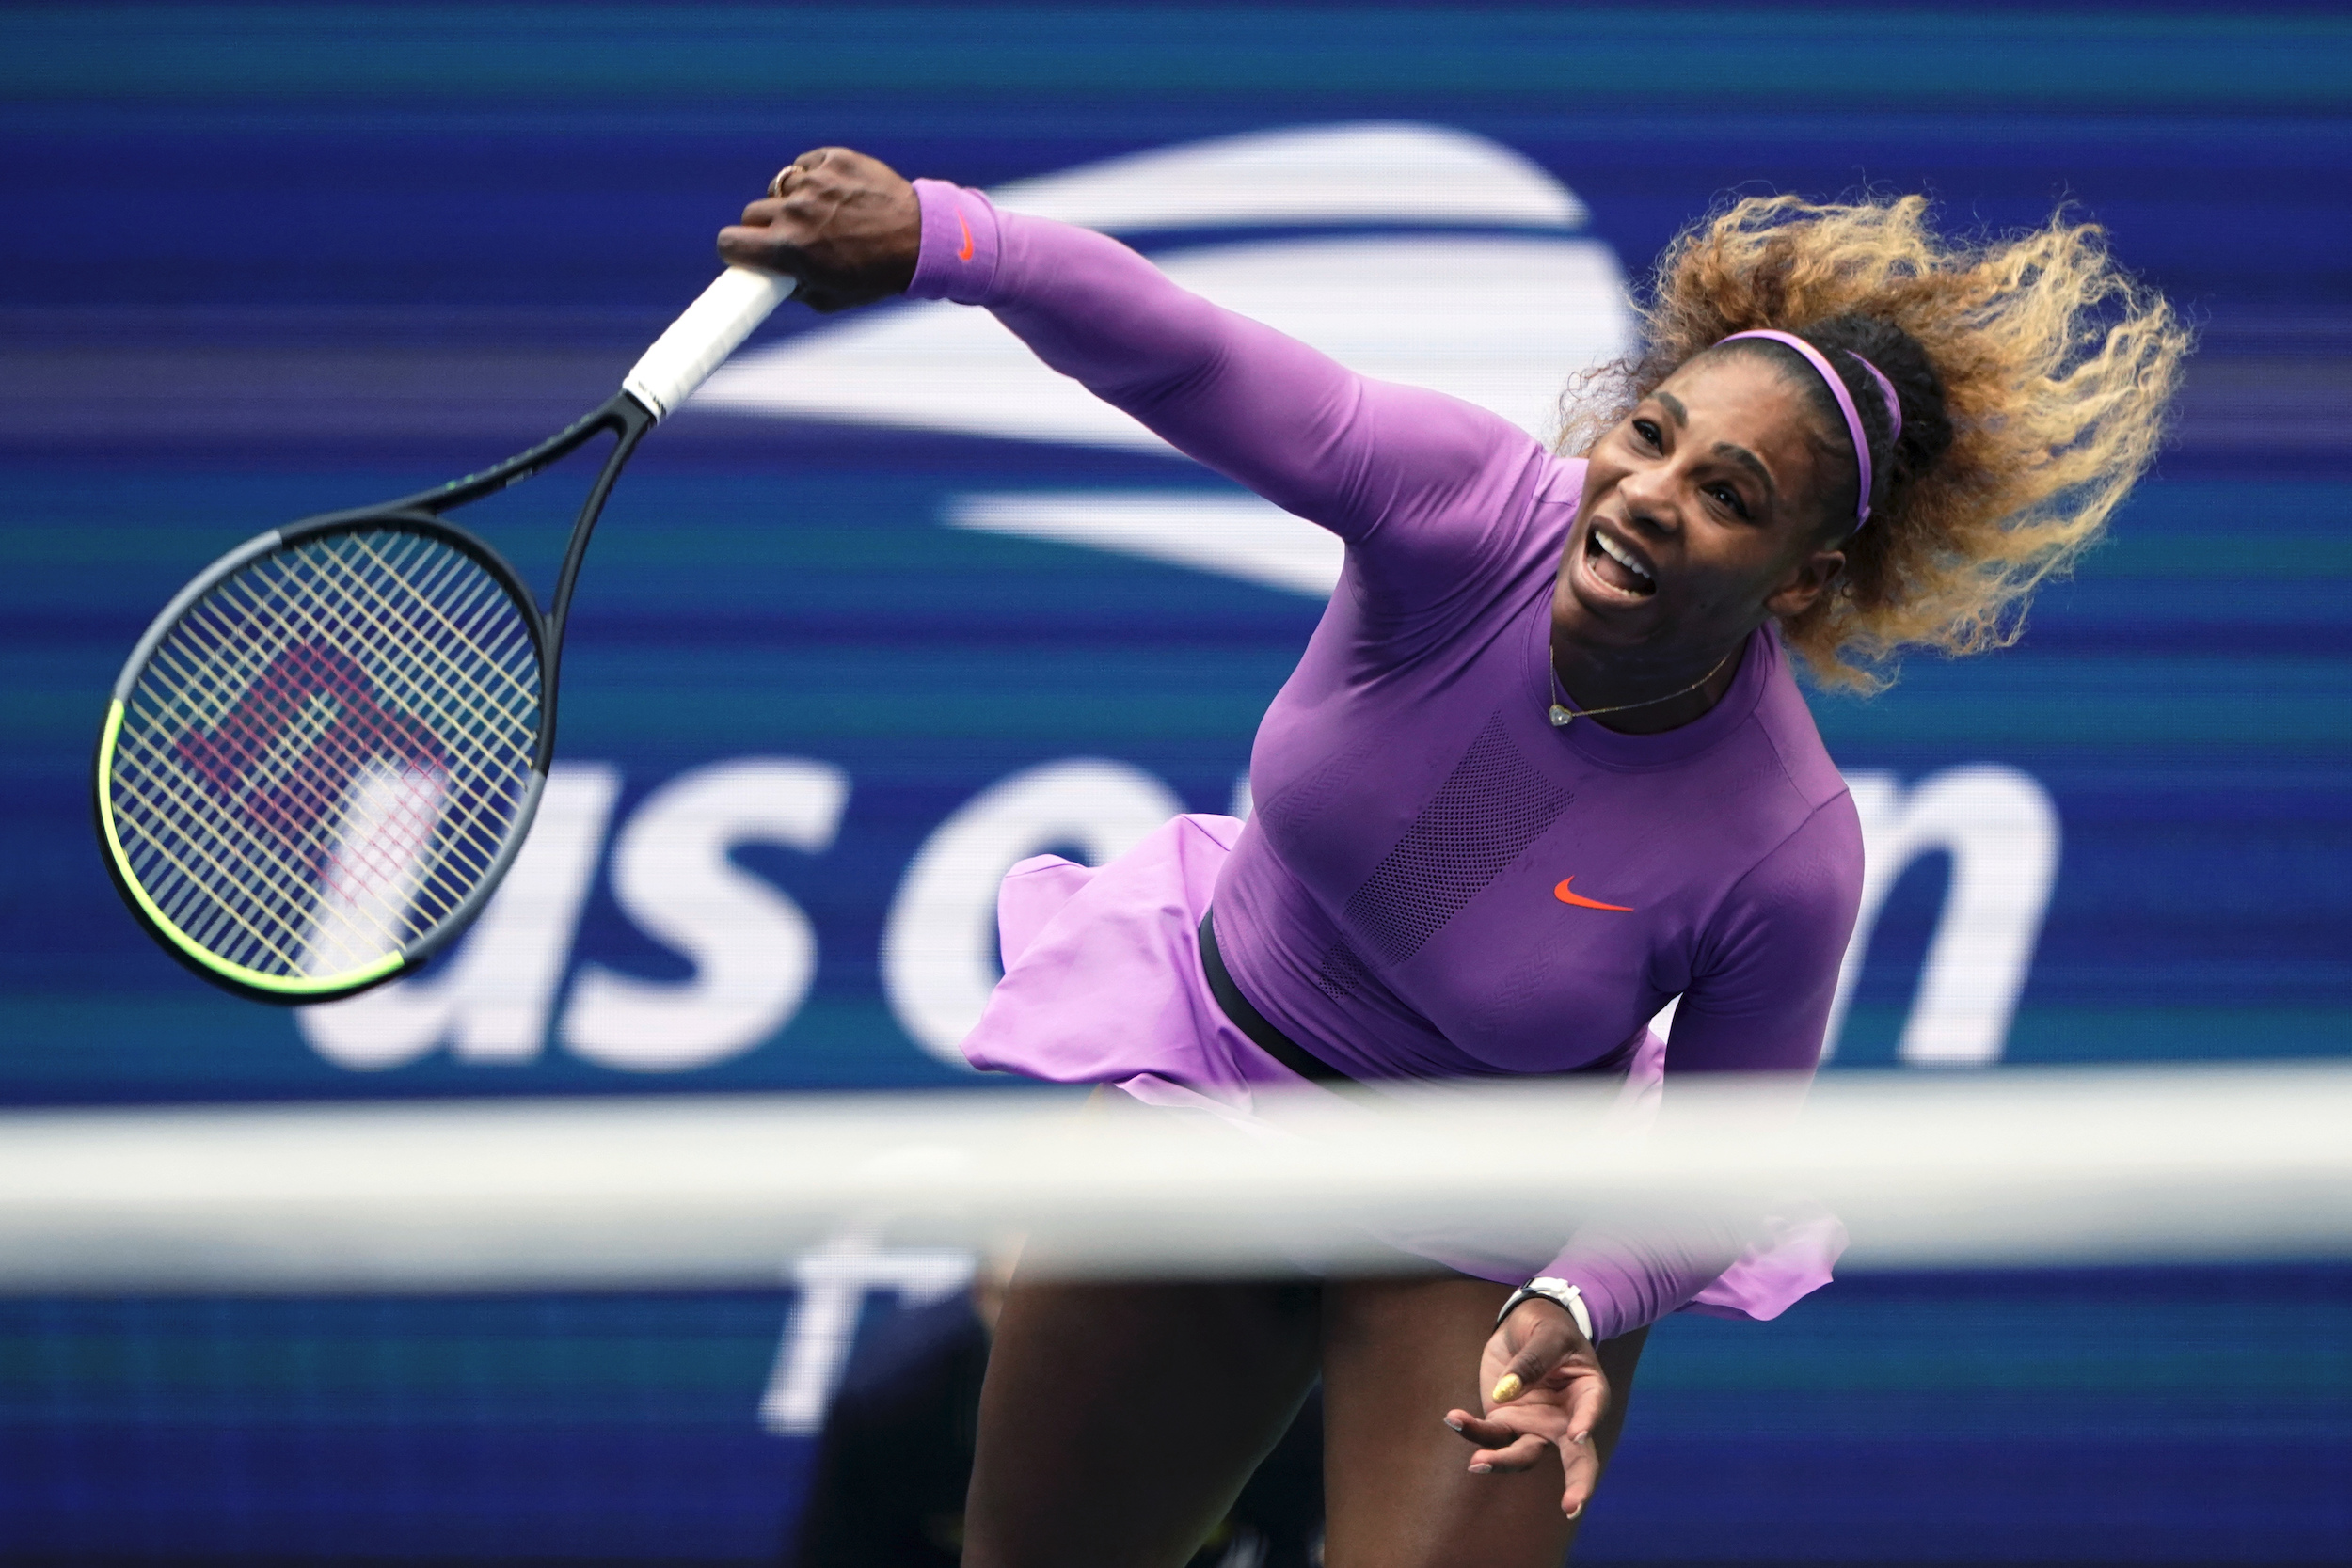 Serena Williams, of the United States, returns a shot to Bianca Andreescu, of Canada, during the women's singles final of the U.S. Open tennis championships on Sept. 7, 2019, in New York.